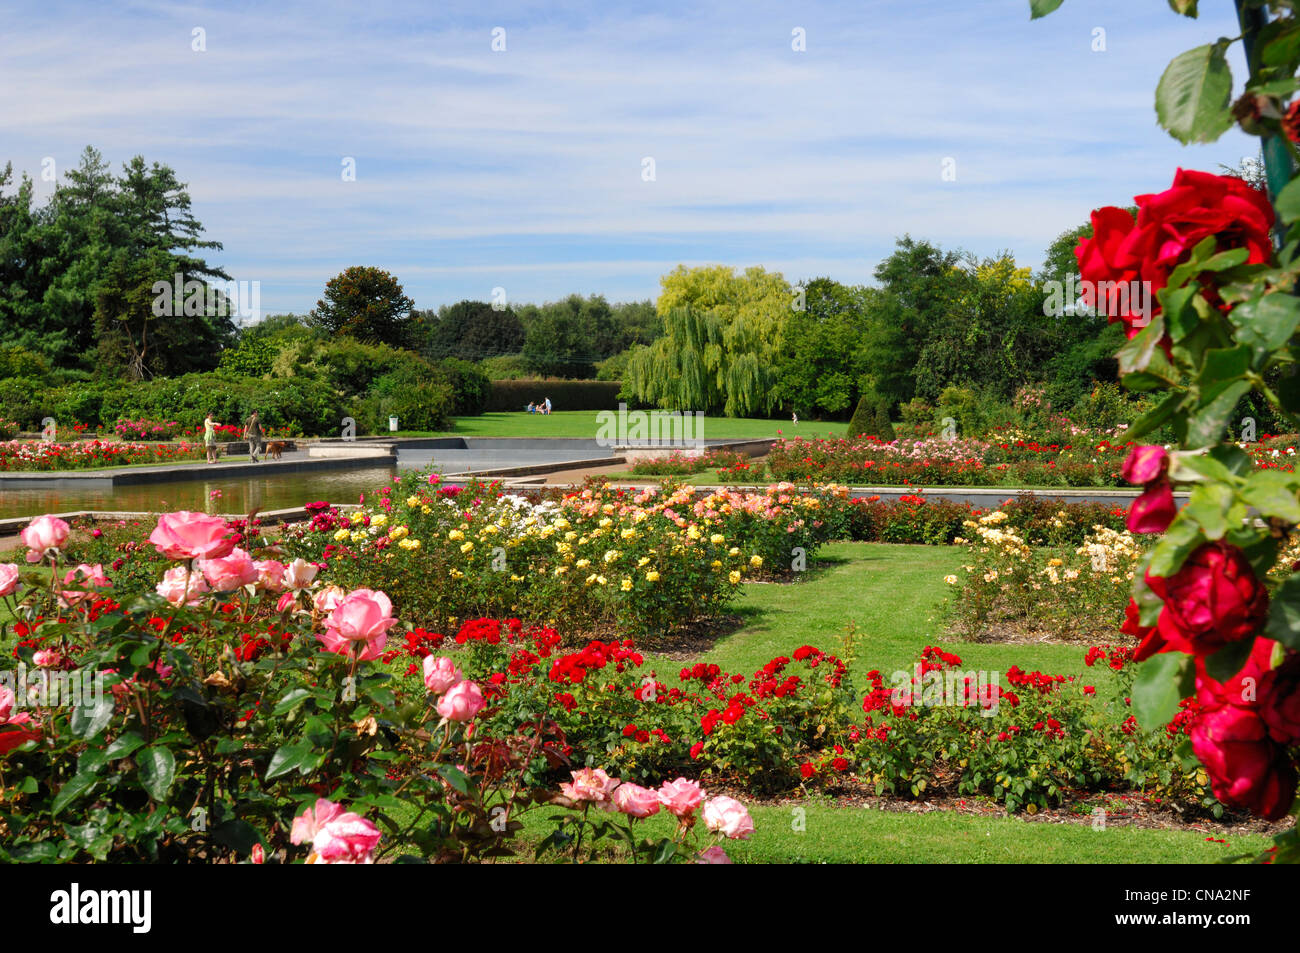 france nord lille jardin des plantes de lille roses and walkers stock photo royalty free. Black Bedroom Furniture Sets. Home Design Ideas